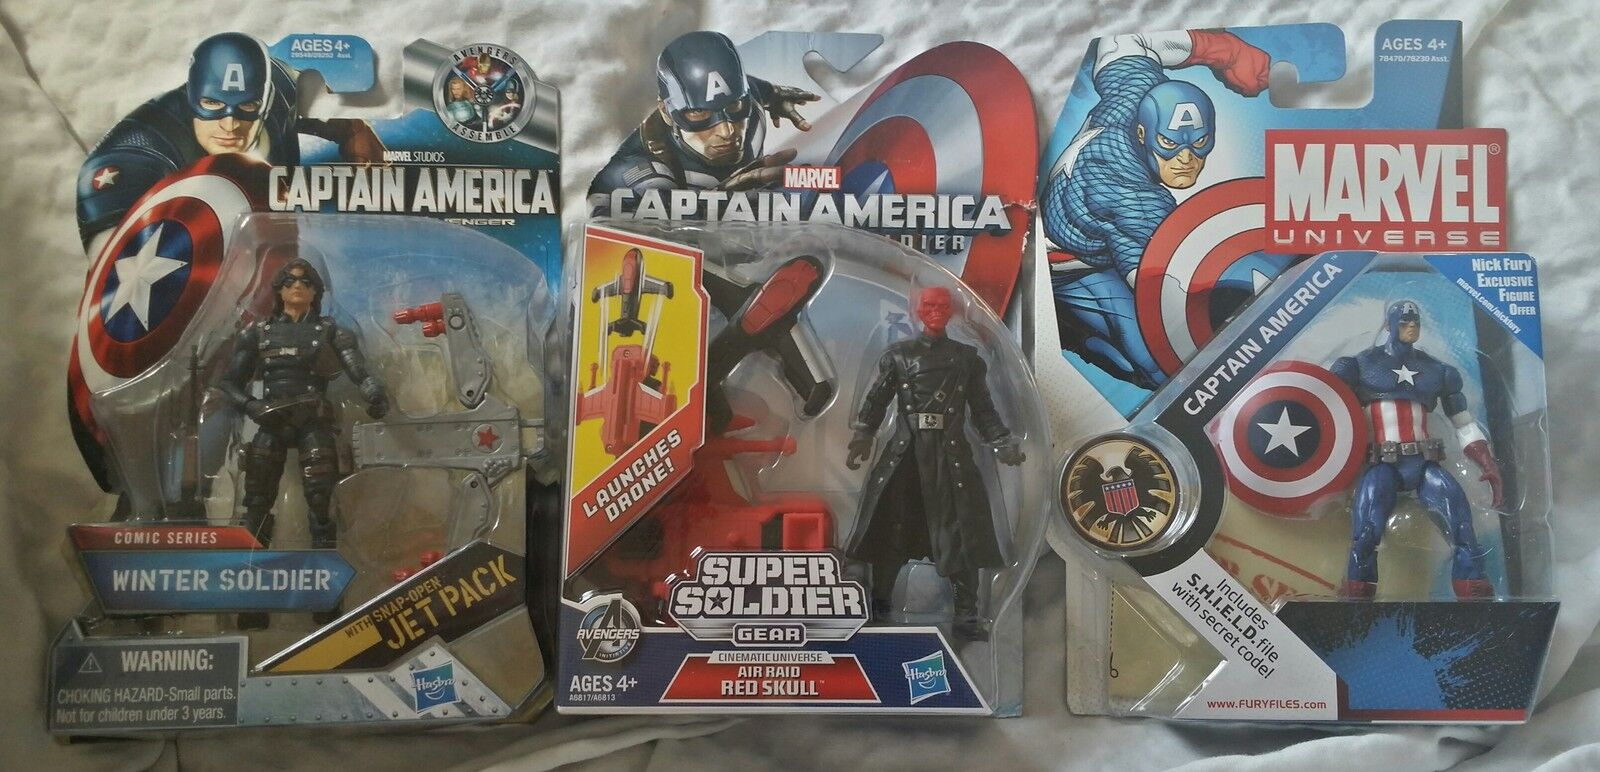 Marvel Universe Action Figures Lot - Winter Soldier Captain America Red Skull